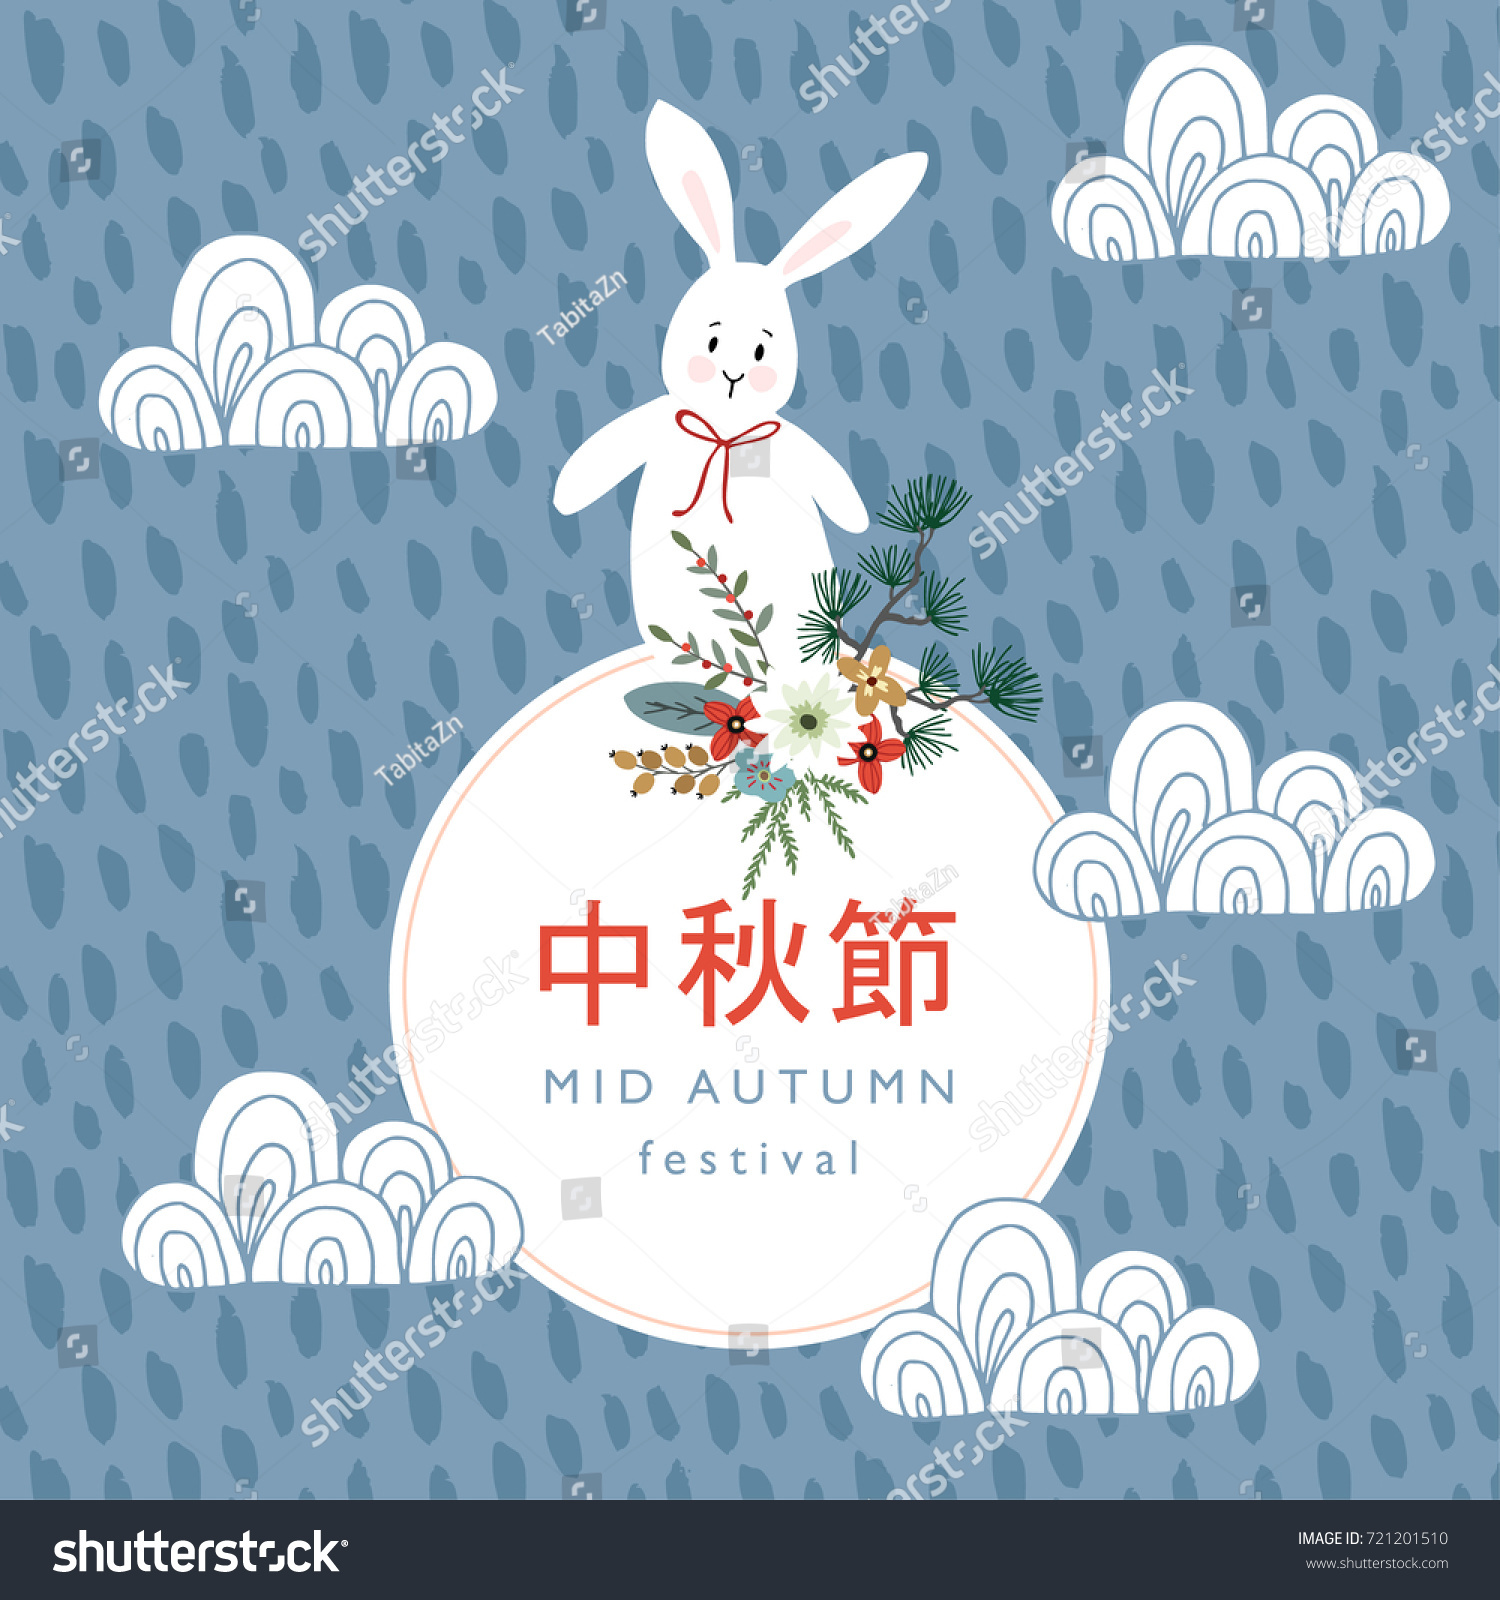 Mid autumn festival greeting quotes best quote 2018 hy 2010 chinese mid autumn festival kristyandbryce Choice Image